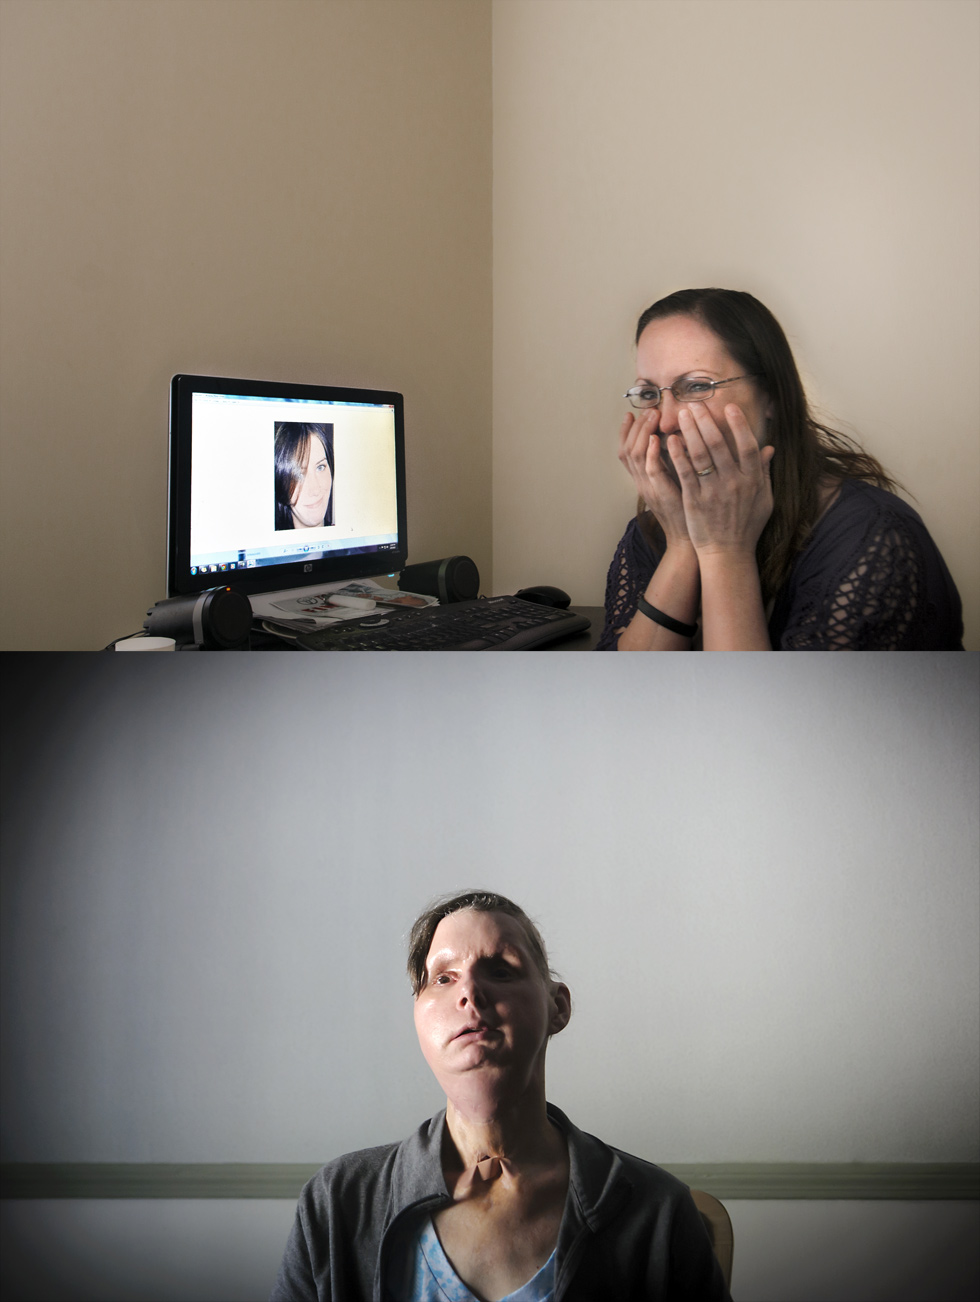 Top: 03.20.2012 Melissa Cann wipes tears while speaking of her sister Maureen Brainard-Barnes (on computer monitor). Bottom: Charla Nash in a Boston-are rehab center.